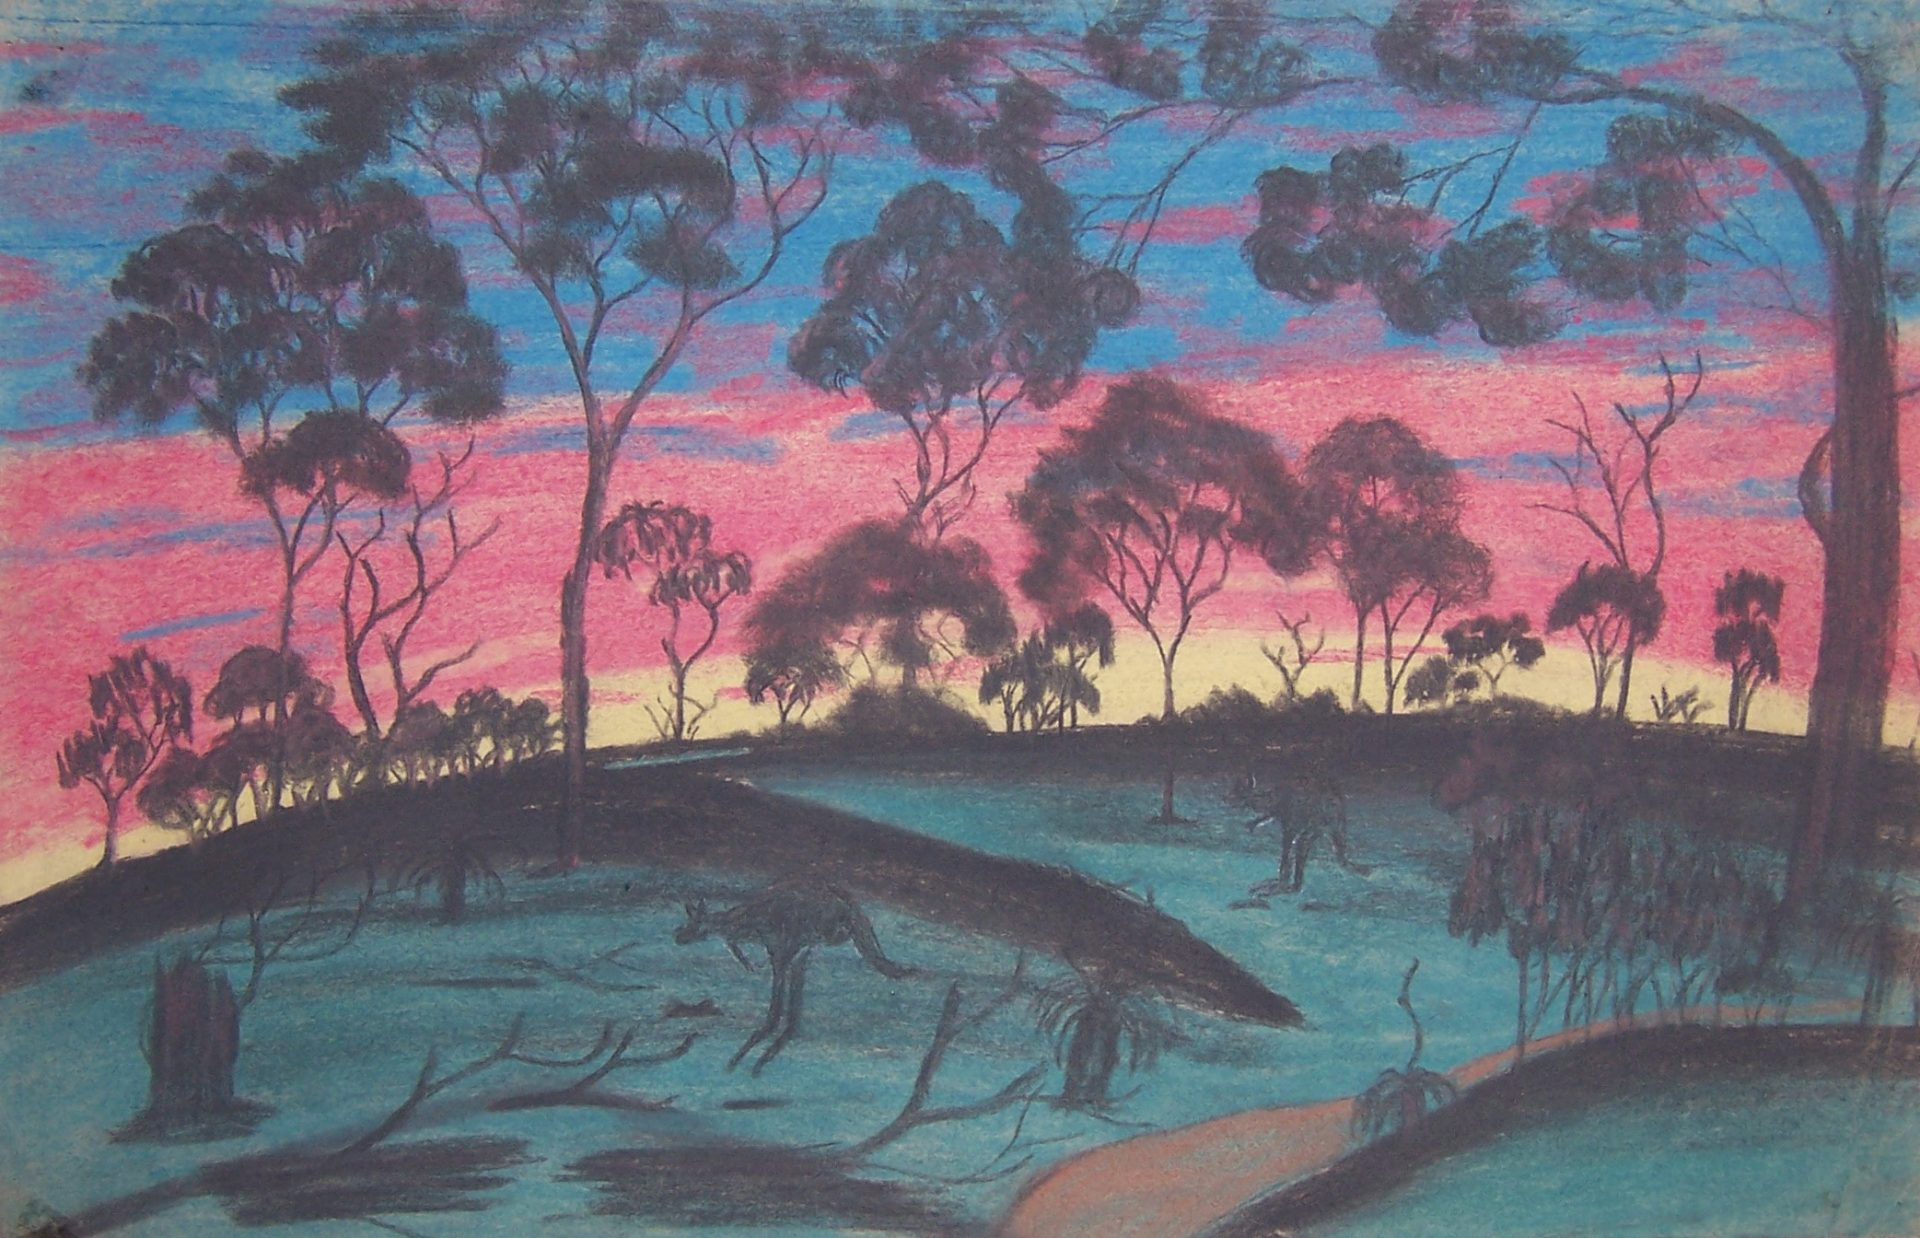 The Colours of the Setting Sun by Keith Indich, pastel and graphite on paper, 28.9 x 44.9cm, c.1949. The Herbert Mayer Collection of Carrolup Artwork, John Curtin Gallery, Curtin University.